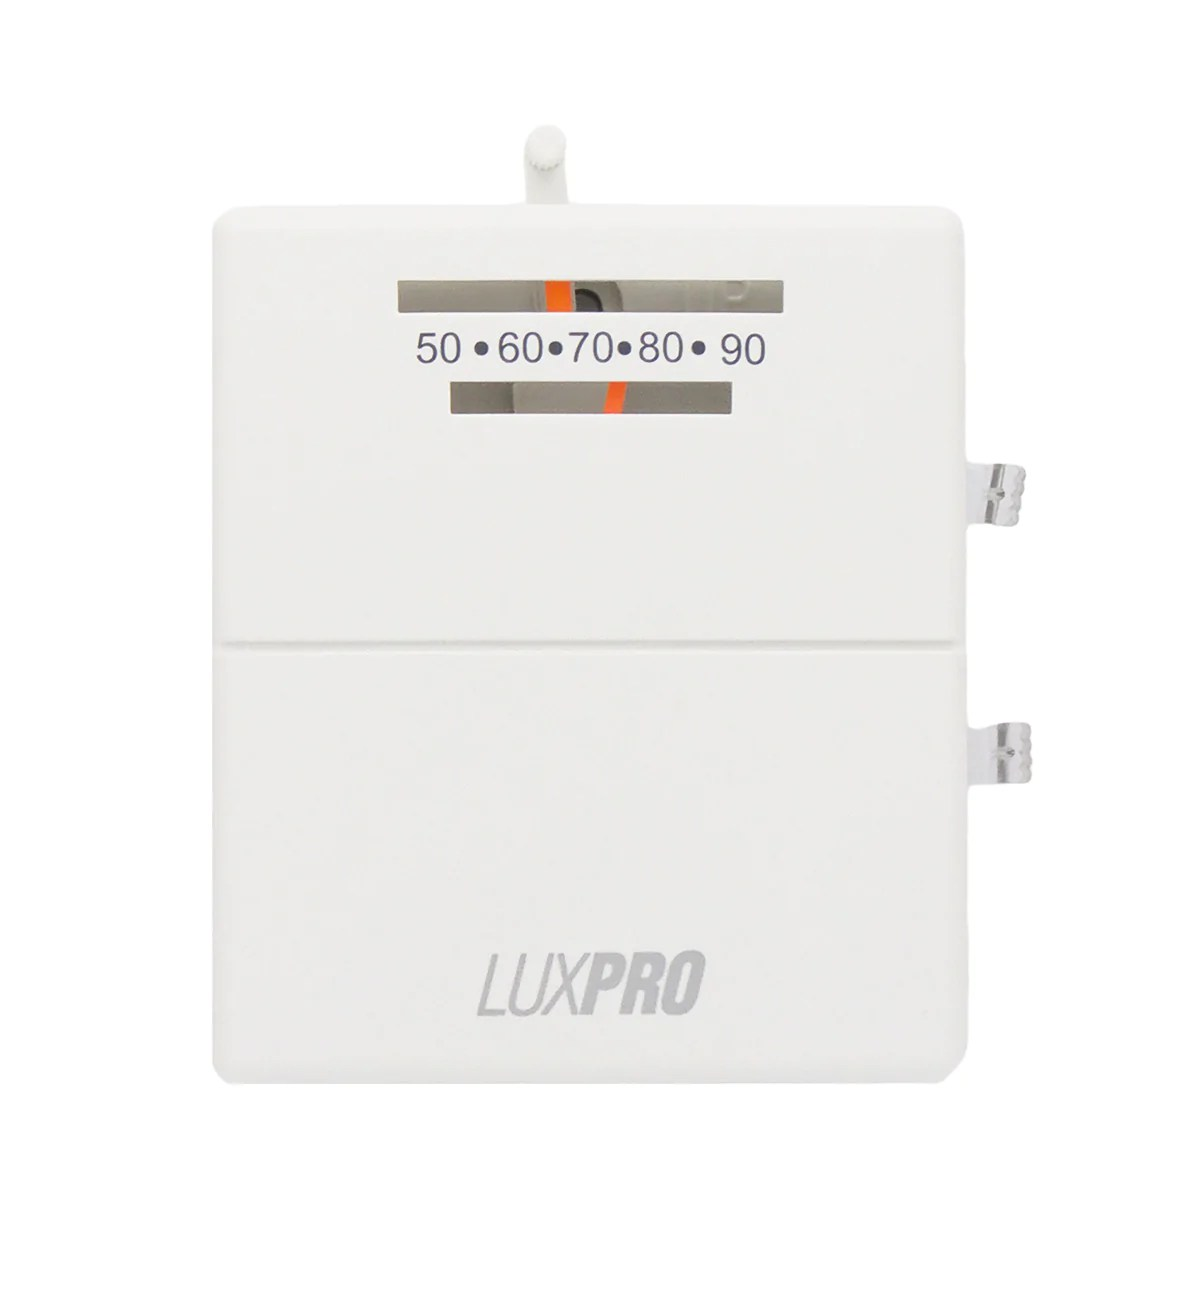 medium resolution of luxpro psm40sa mechanical snap action 2 wire heat only thermostat lennox thermostat wiring diagram luxpro thermostat 2wire wiring diagram